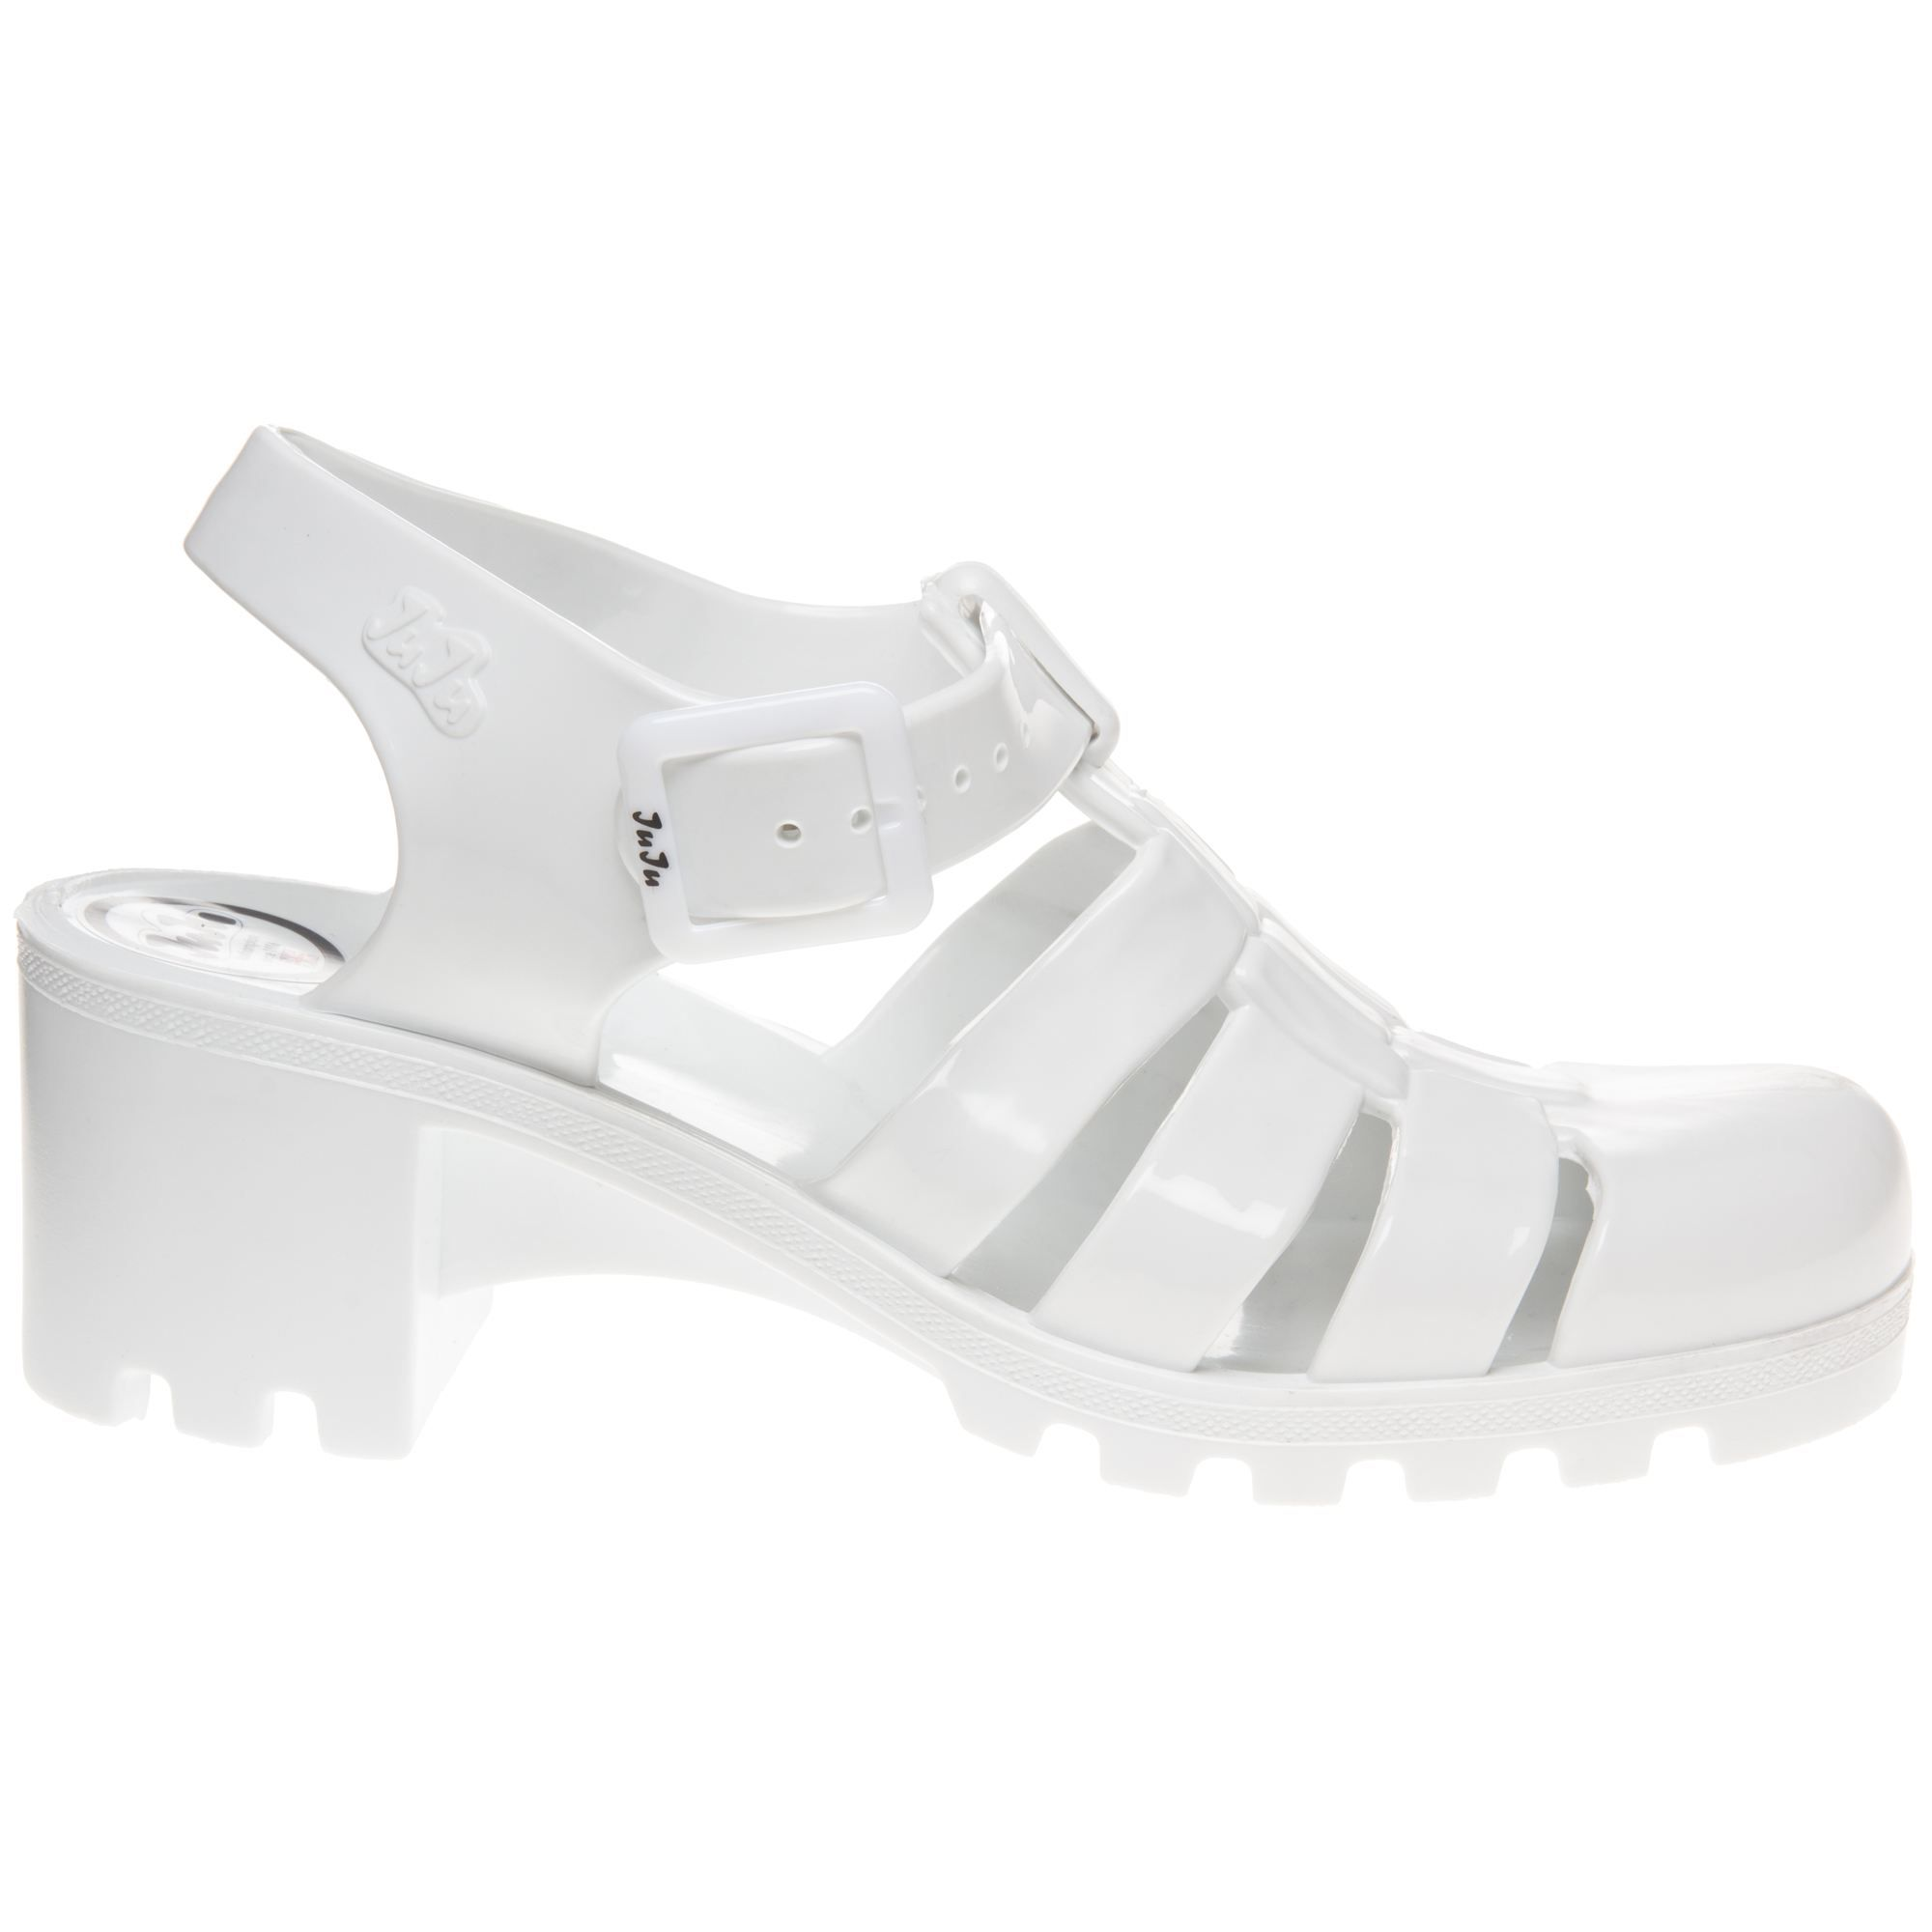 65bf95f0d787 Juju Jellies Babe Sandals in white plastic £24.99 Women - SOLETRADER ...